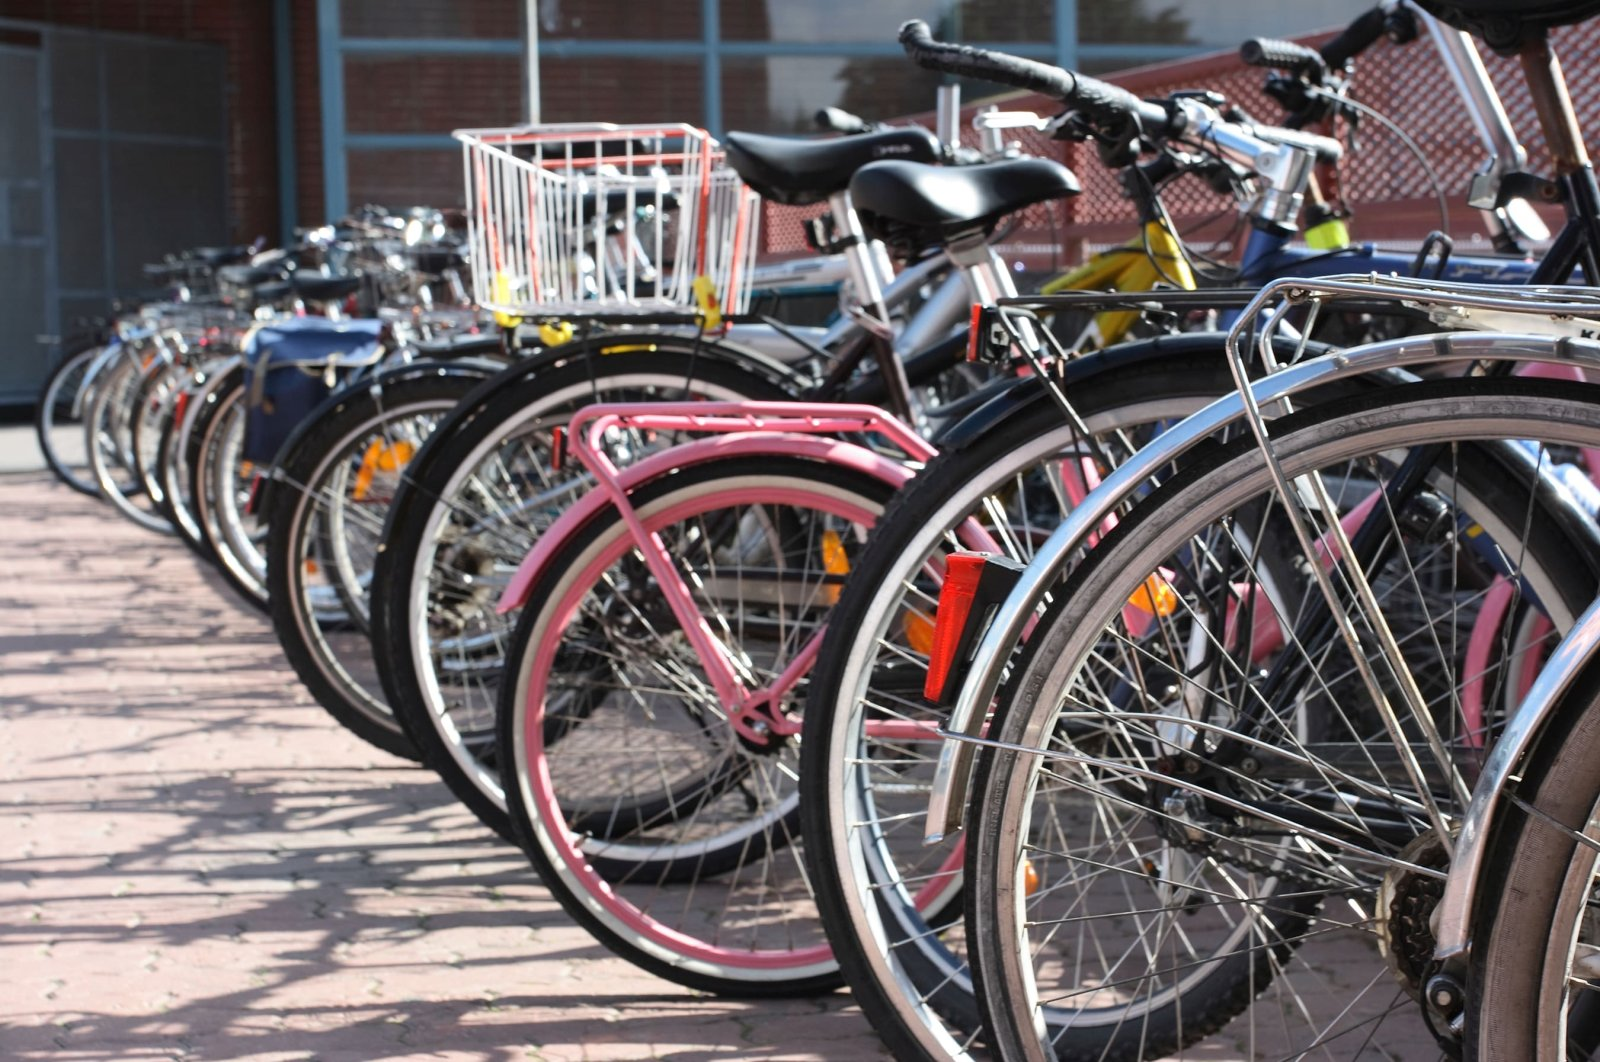 A wide range of bicycles parked on a bike rack. (Courtesy of WWF Turkey)